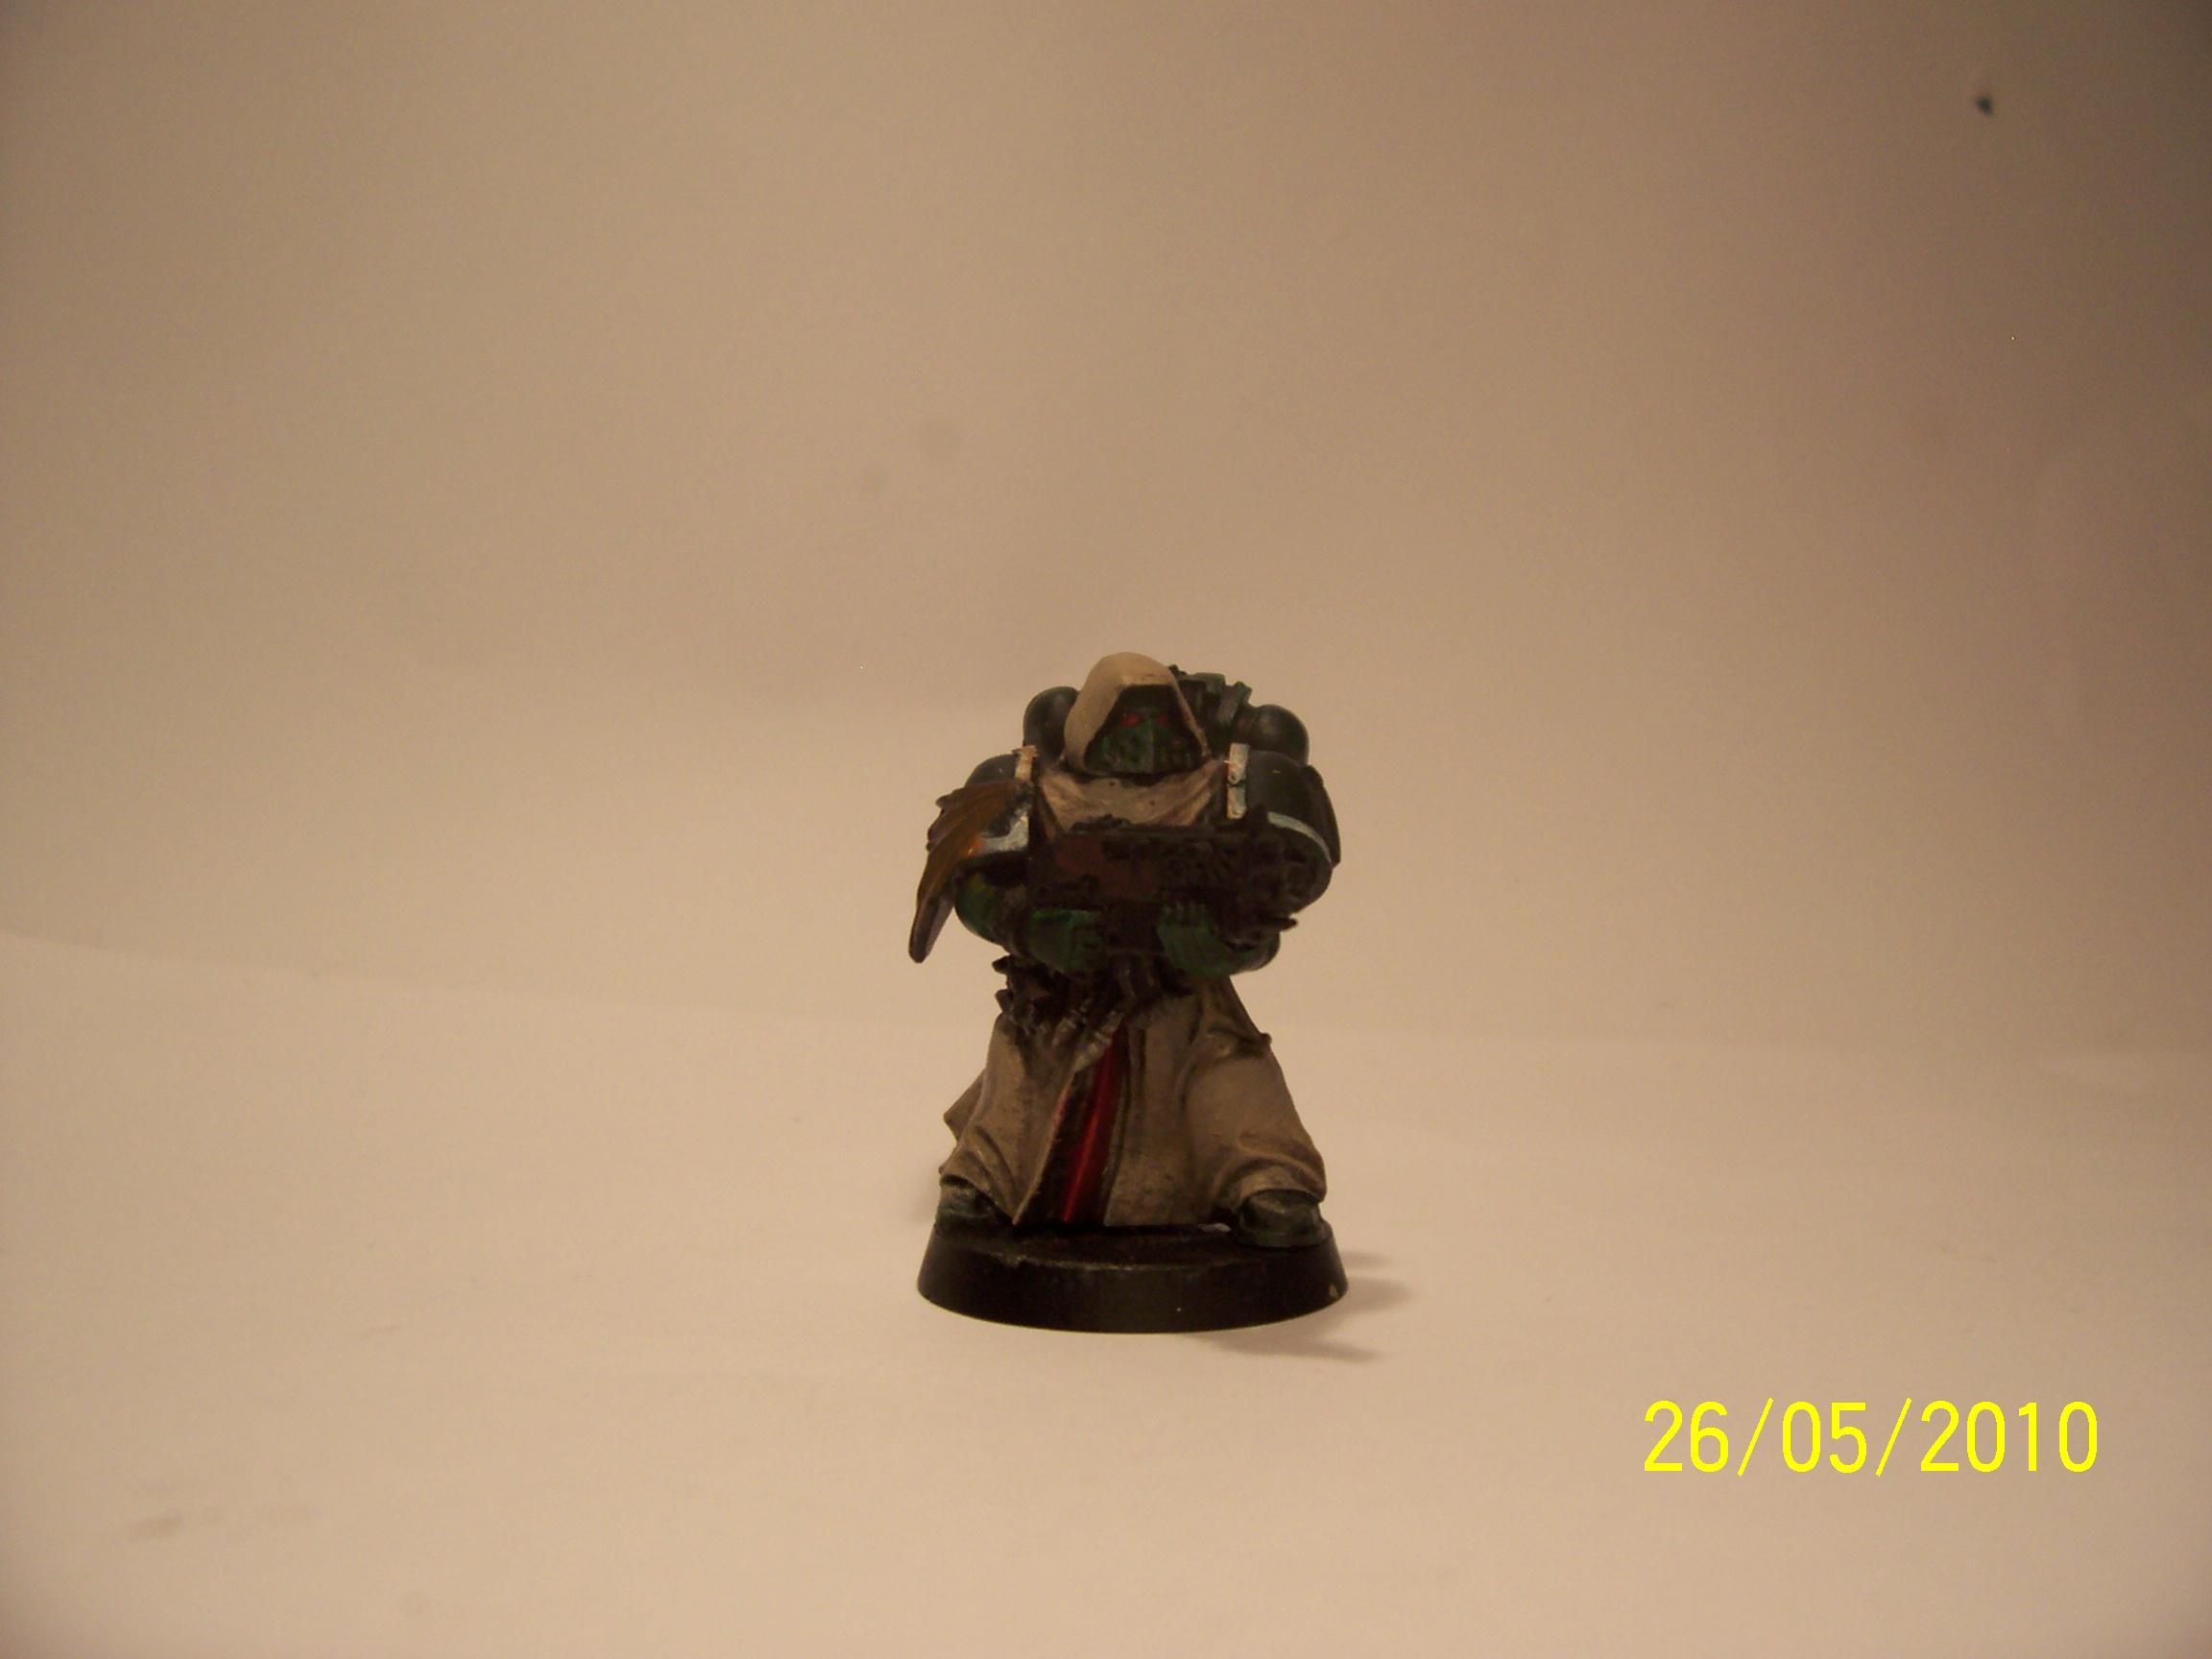 ive been working on this guy, especially his robes